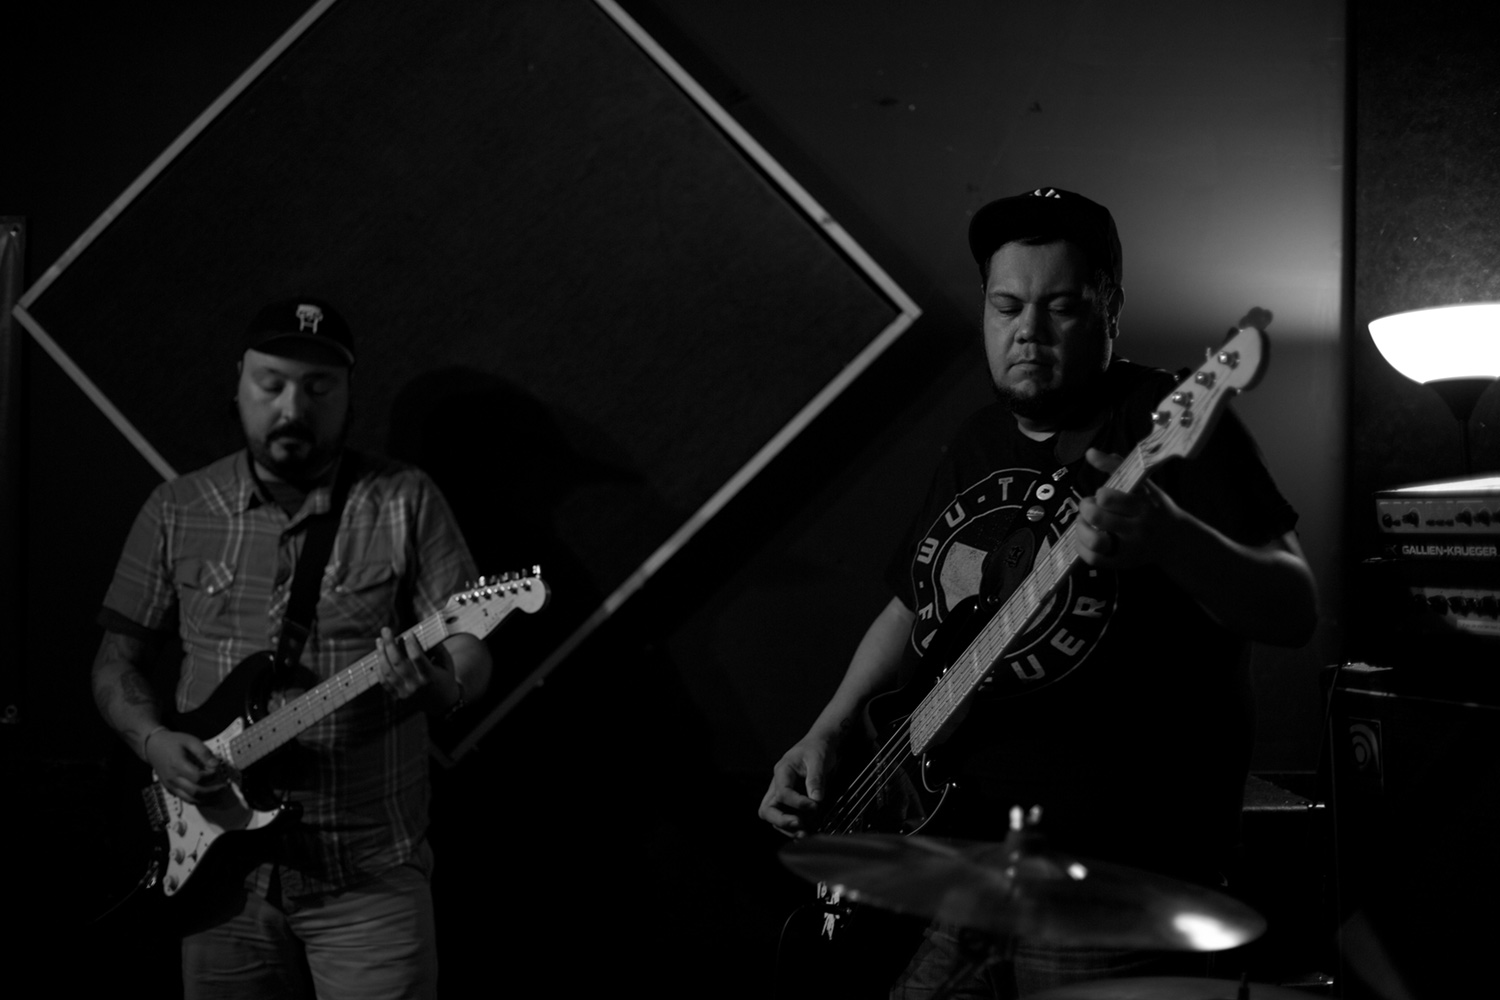 Ricky-J-Hernandez-com-Beatrix-Kiddo-Band-Practice-Photo-Jam-Orange-County-band-and-portrait-photography-011